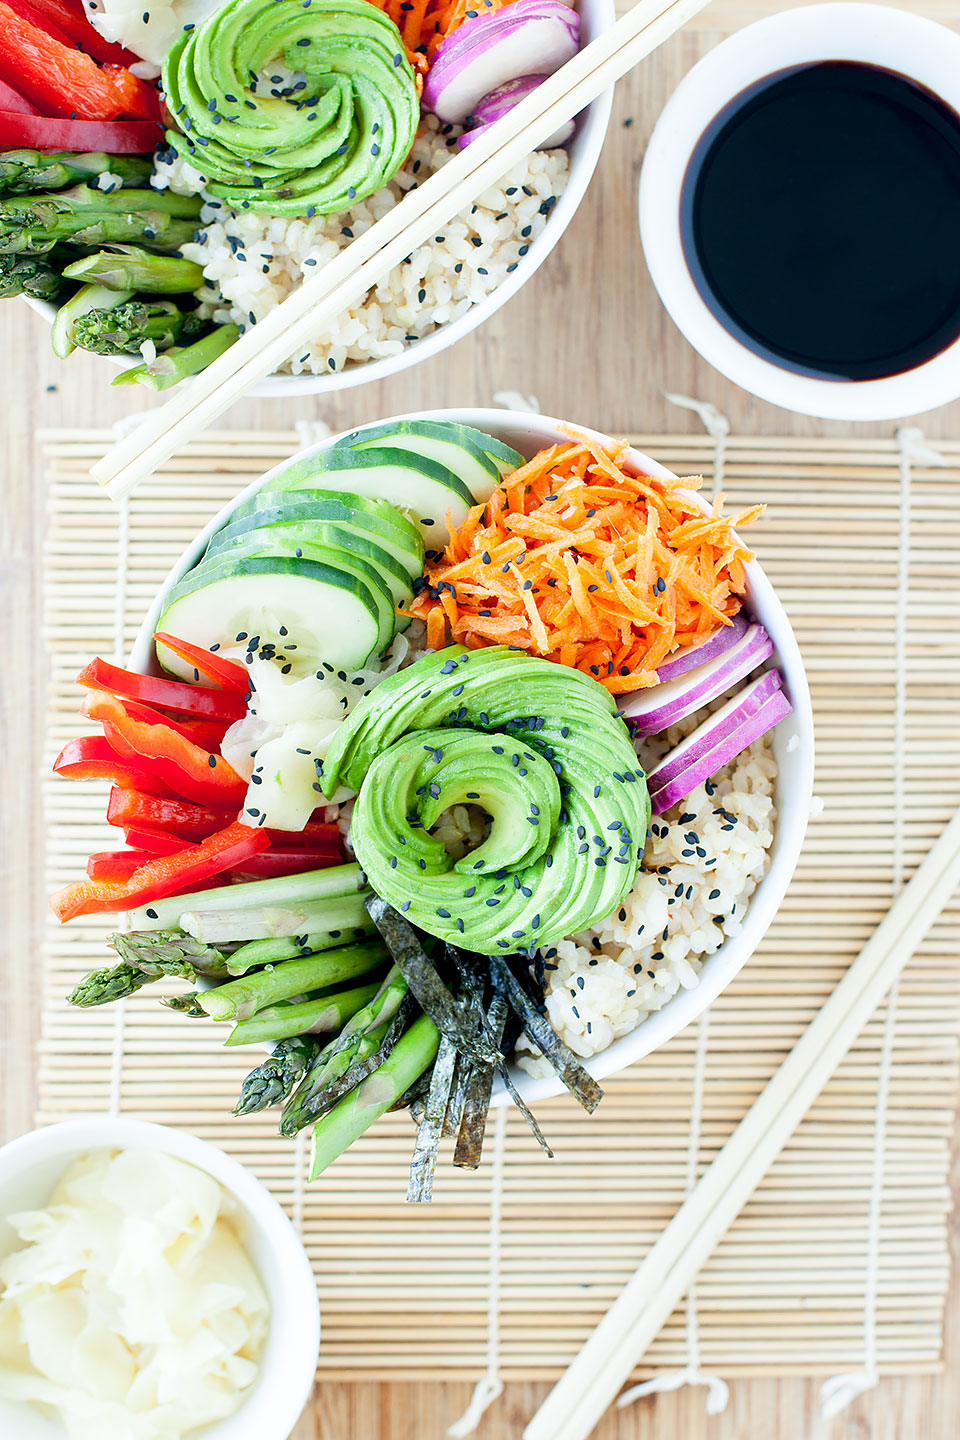 VEGAN SUSHI SALAD BOWLS | Loaded with seasonal veggies and perfect for a healthy, quick, and easy weeknight meal. Vegan and gluten-free. | LOVELEAF CO. #vegan #sushi #glutenfree #vegetarian #vegansushi #easyrecipe #salad #bowl